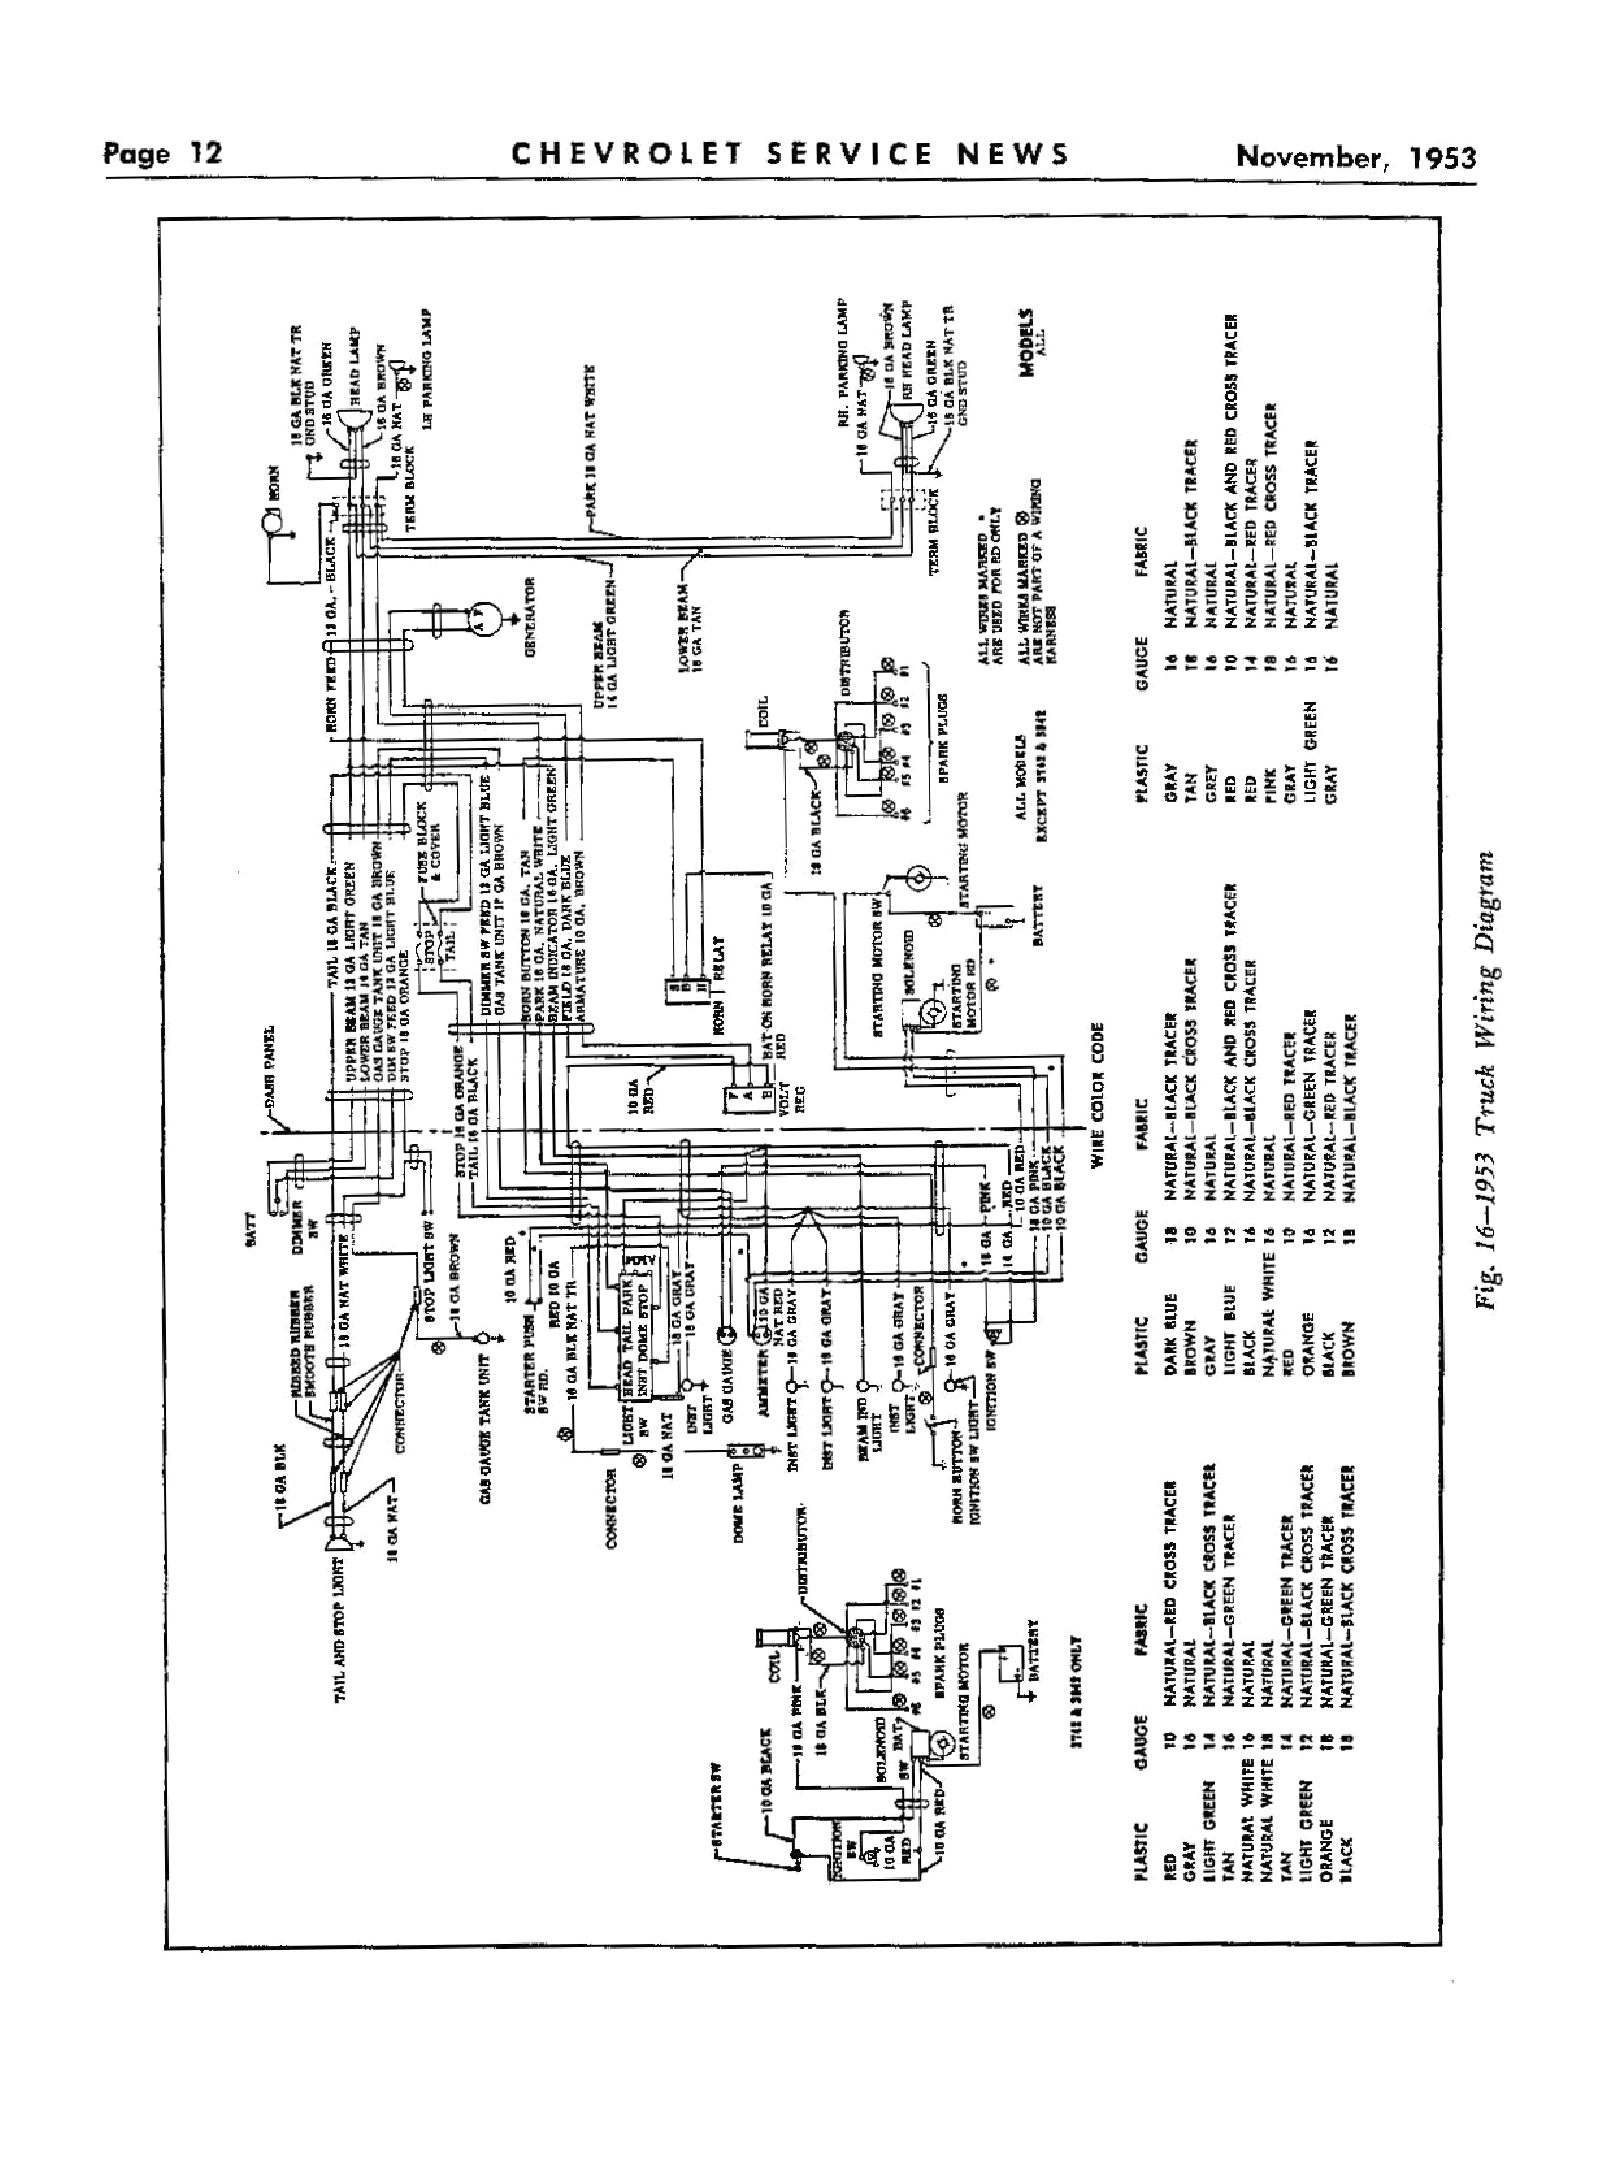 53csn1112 chevy wiring diagrams 1957 chevy truck turn signal wiring diagram at pacquiaovsvargaslive.co